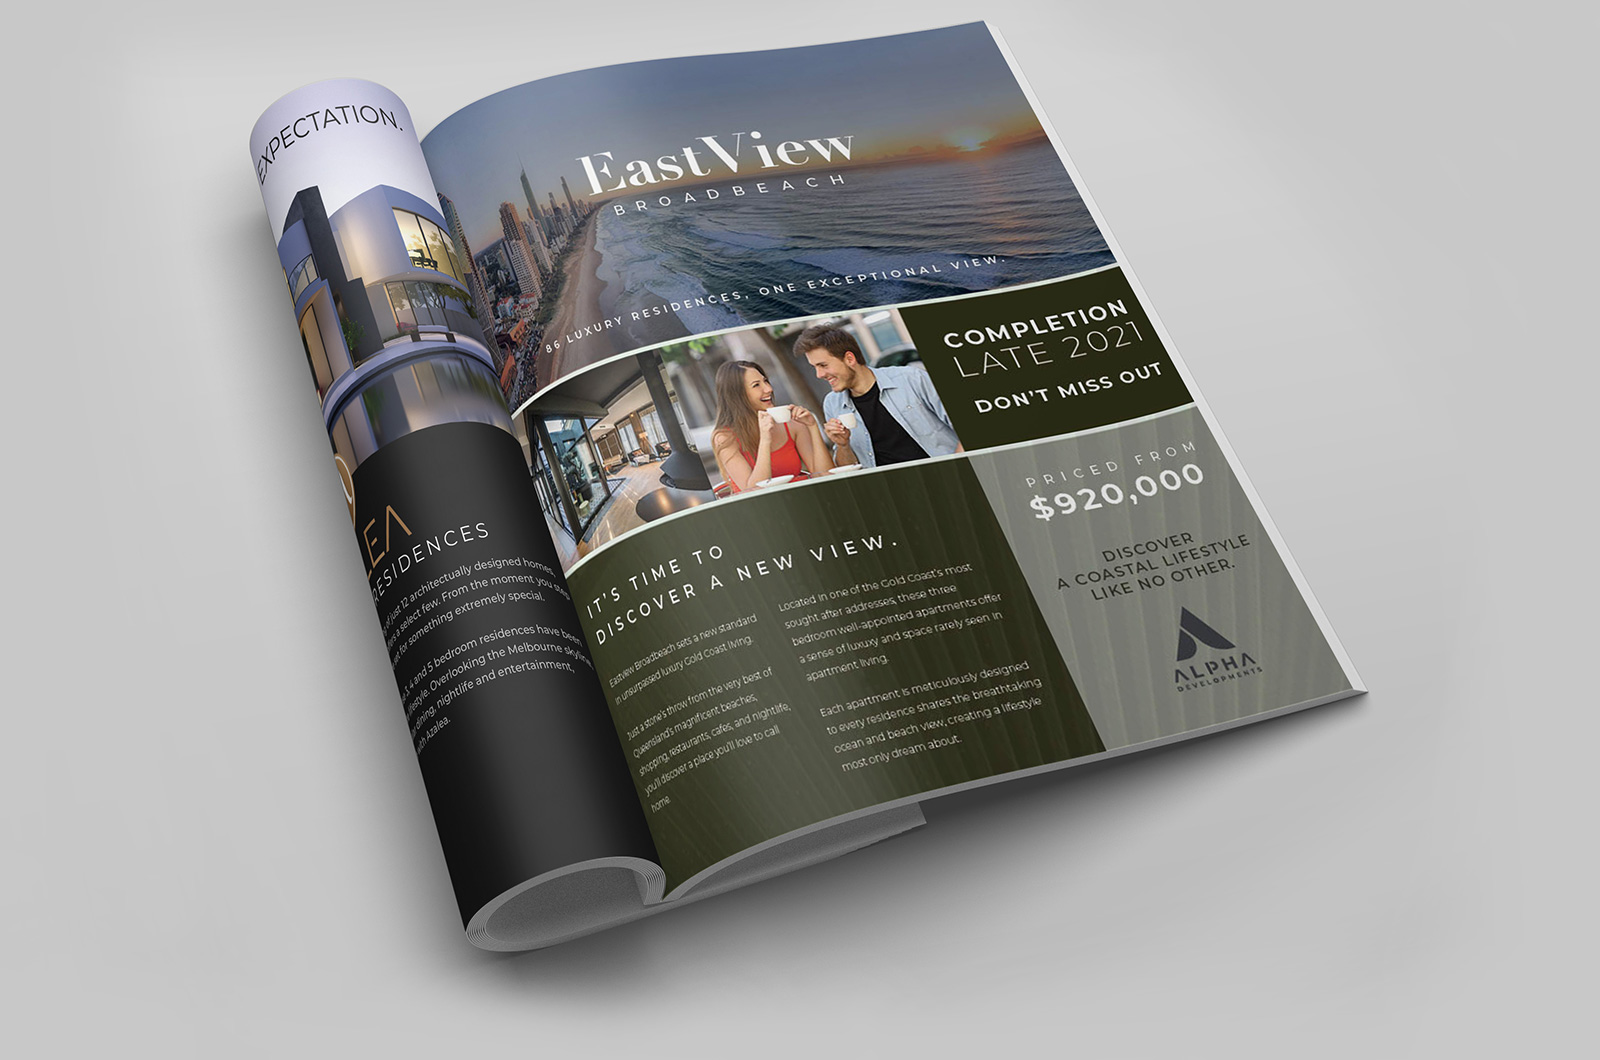 Gold Coast Real Estate Advertising design